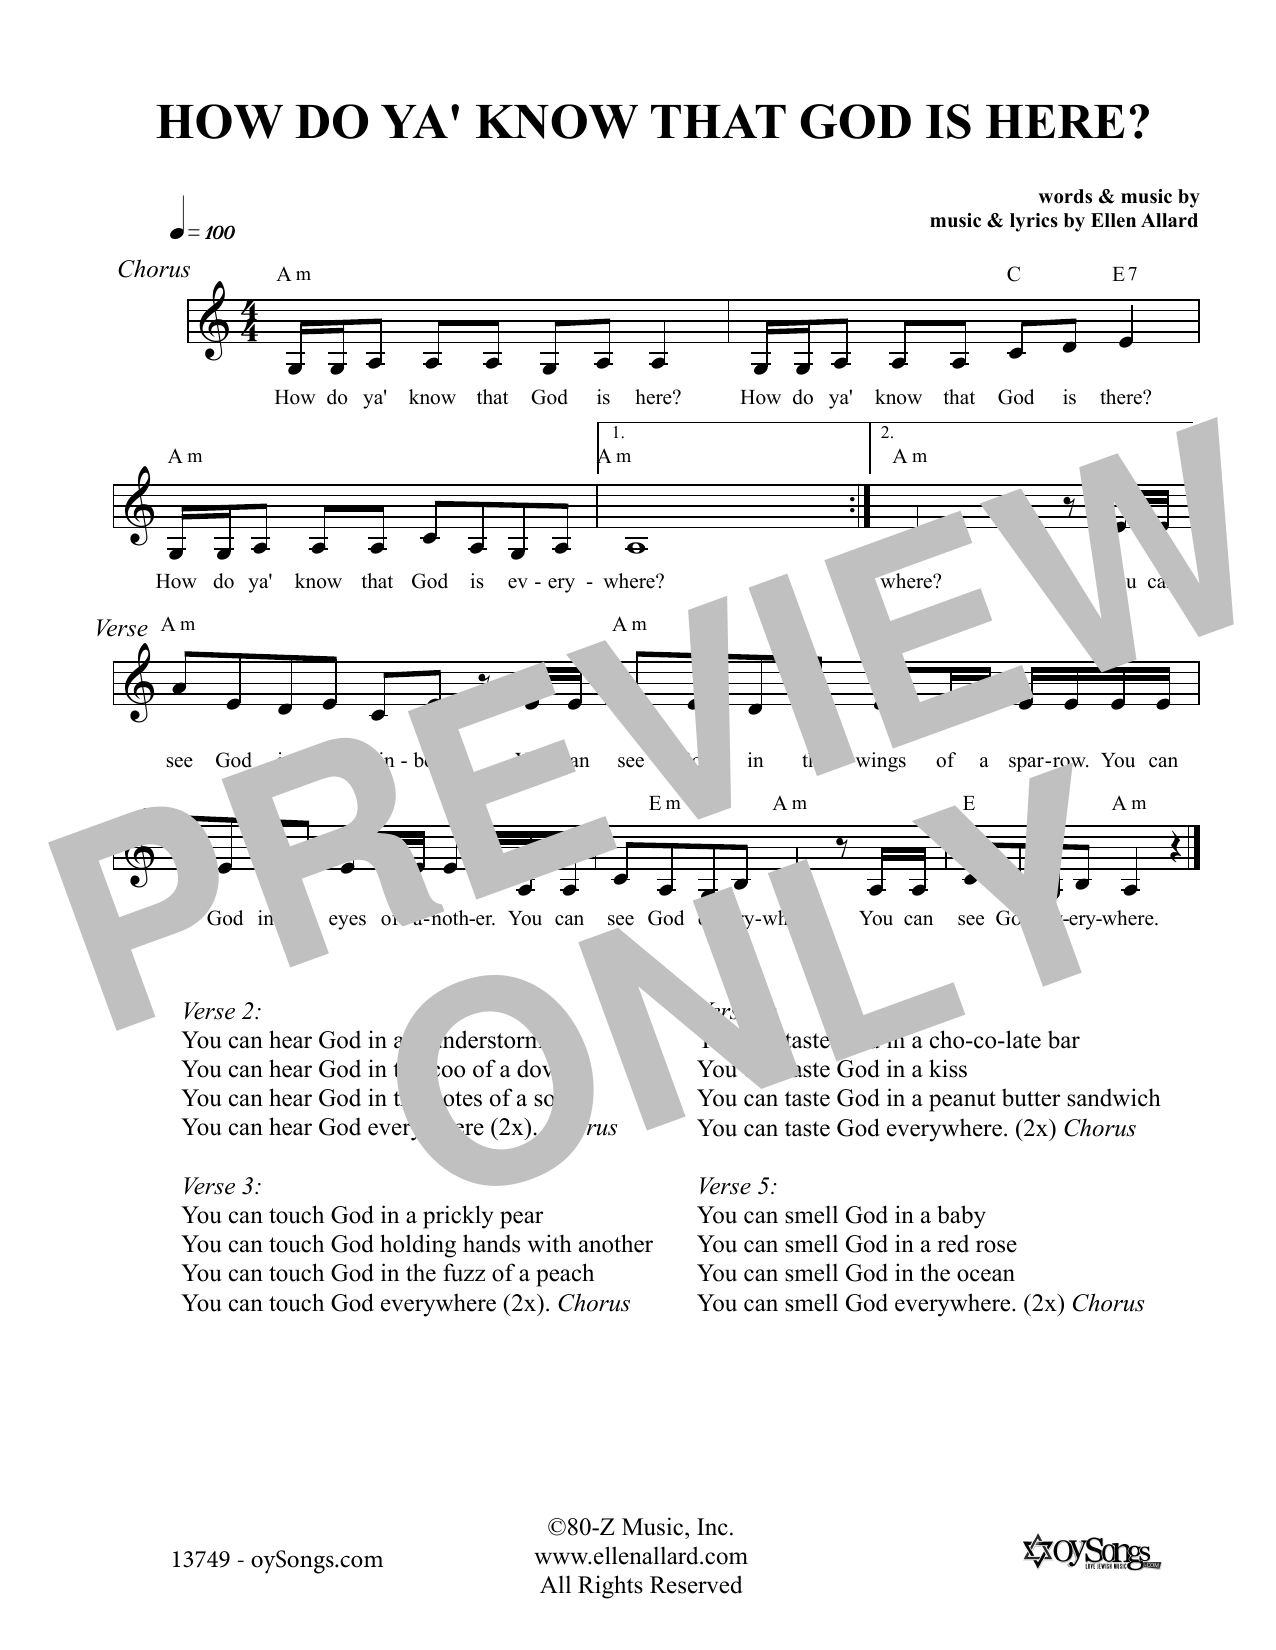 Ellen Allard How Do You Know That God Is Here sheet music notes and chords. Download Printable PDF.